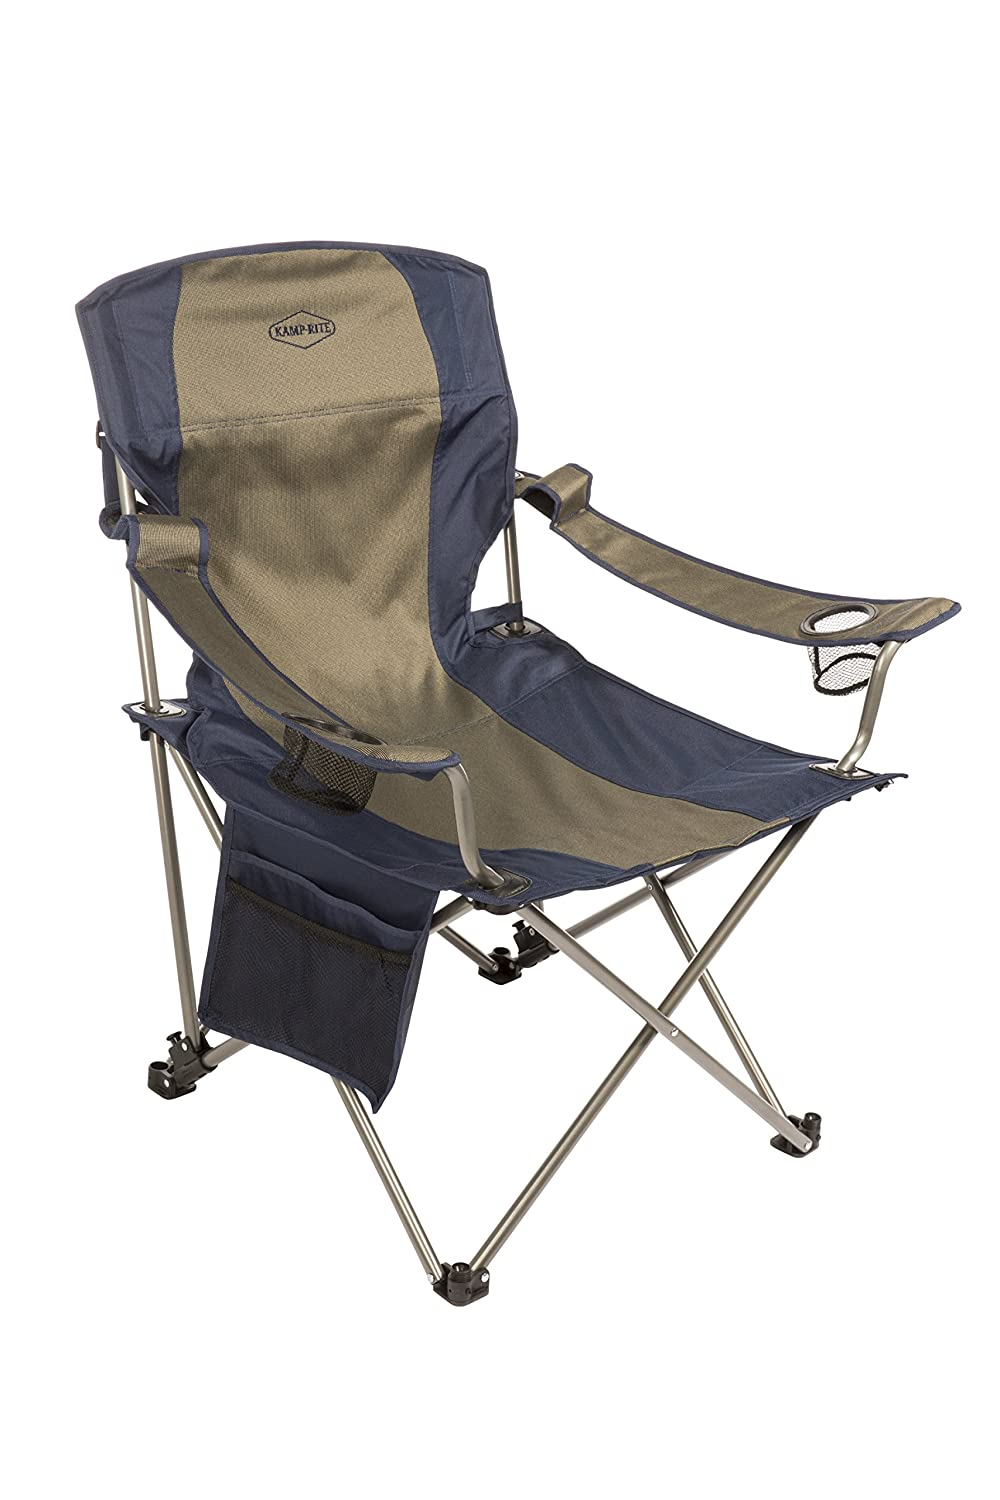 Quad chair with footrest - Amazon Com Chair With Removable Foot Rest One Size Multi Sports Outdoors